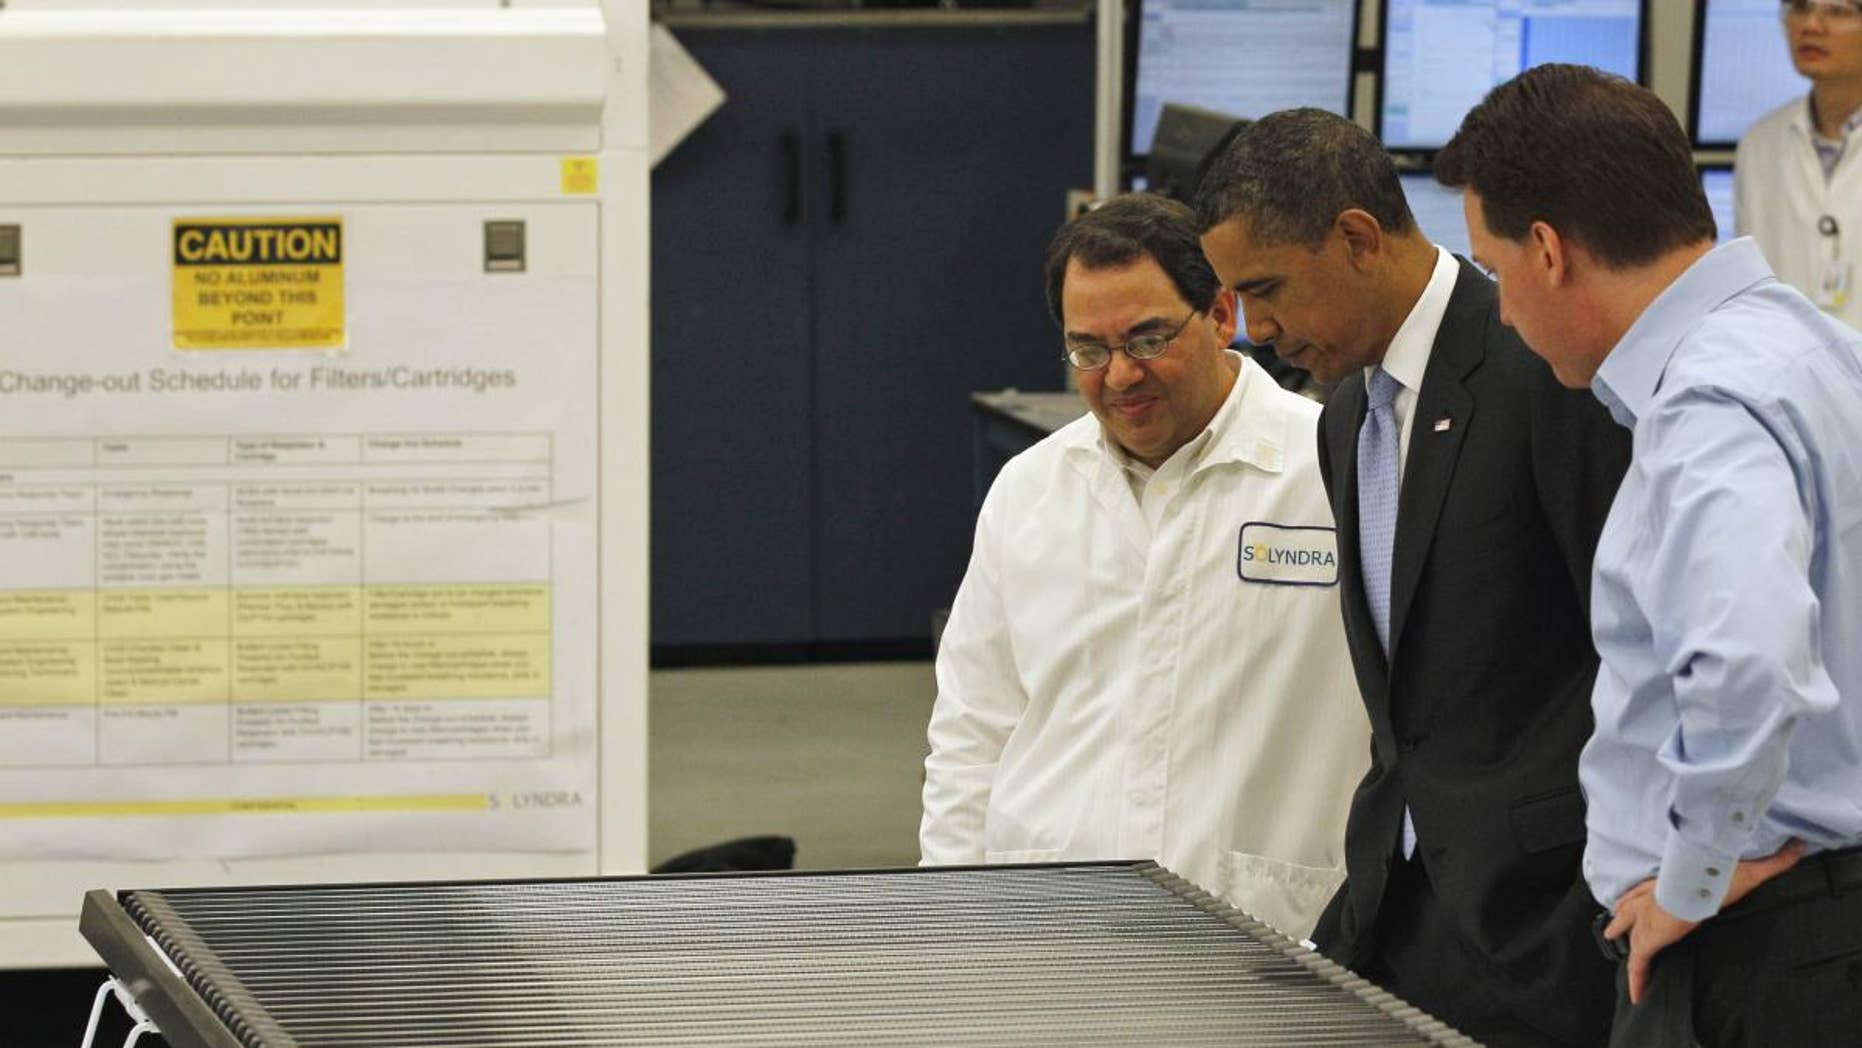 President Barack Obama, accompanied by Solyndra Chief executive Officer Chris Gronet, right, and Executive Vice President Ben Bierman, looks at a solar panel during a tour of Solyndra, Inc., a solar panel manufacturing facility, in Fremont, Calif. Wednesday, May 26, 2010. (AP Photo/Alex Brandon)